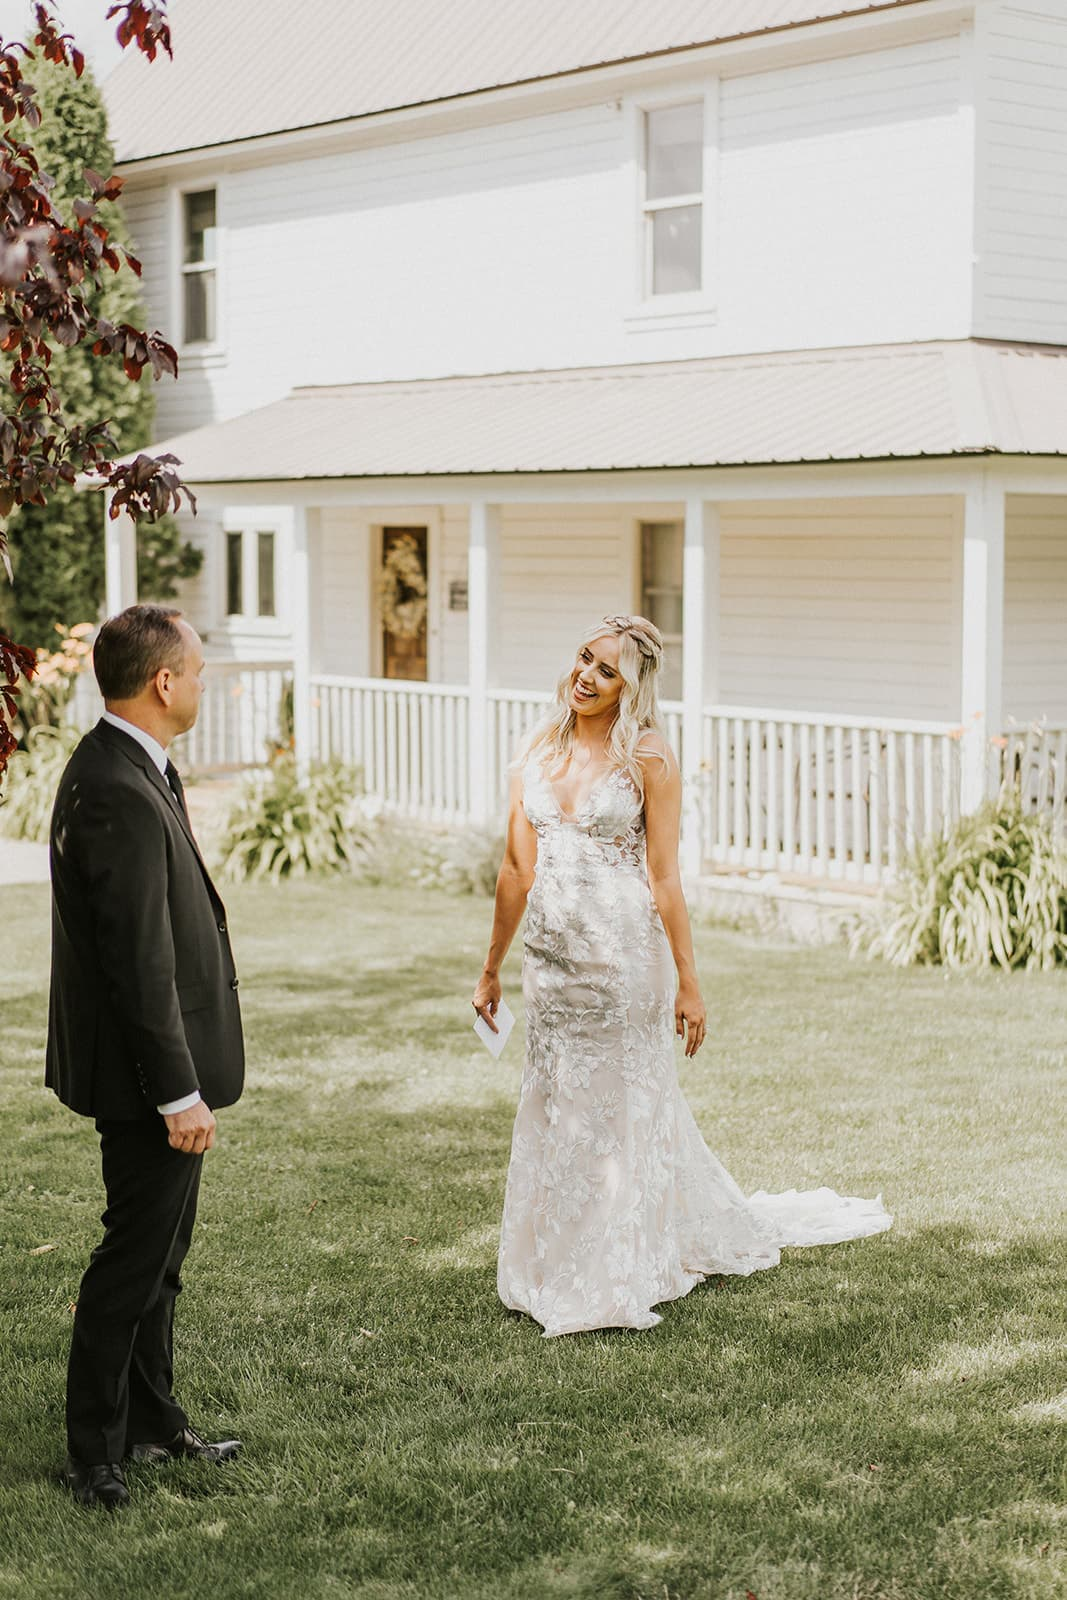 brides emotional first look with dad in from of white farmhouse